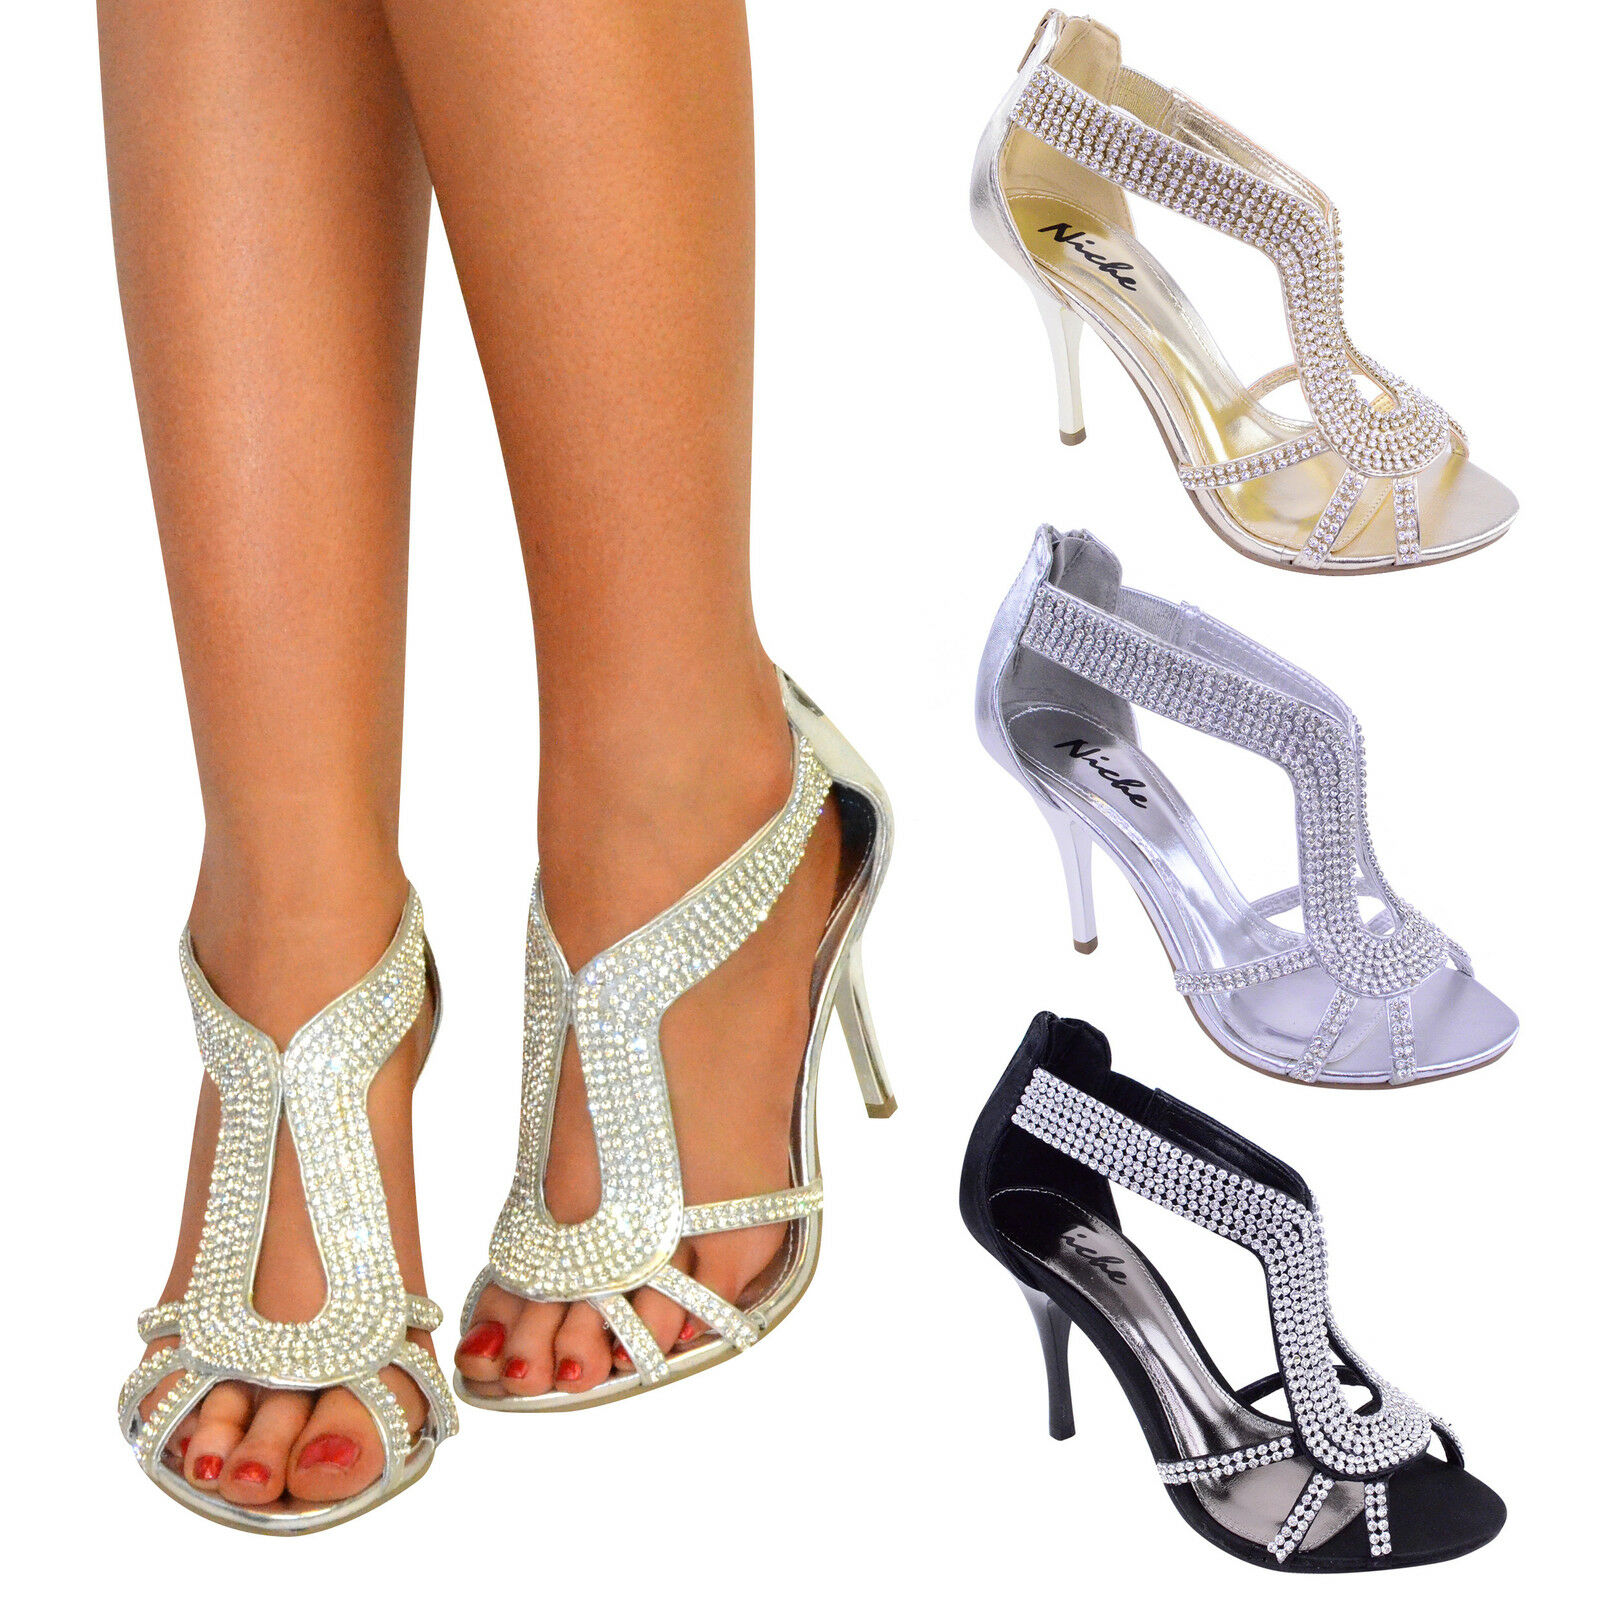 LADIES WOMENS PARTY PROM BRIDAL EVENING FASHION HIGH HEELS SHOES SANDALS SIZE